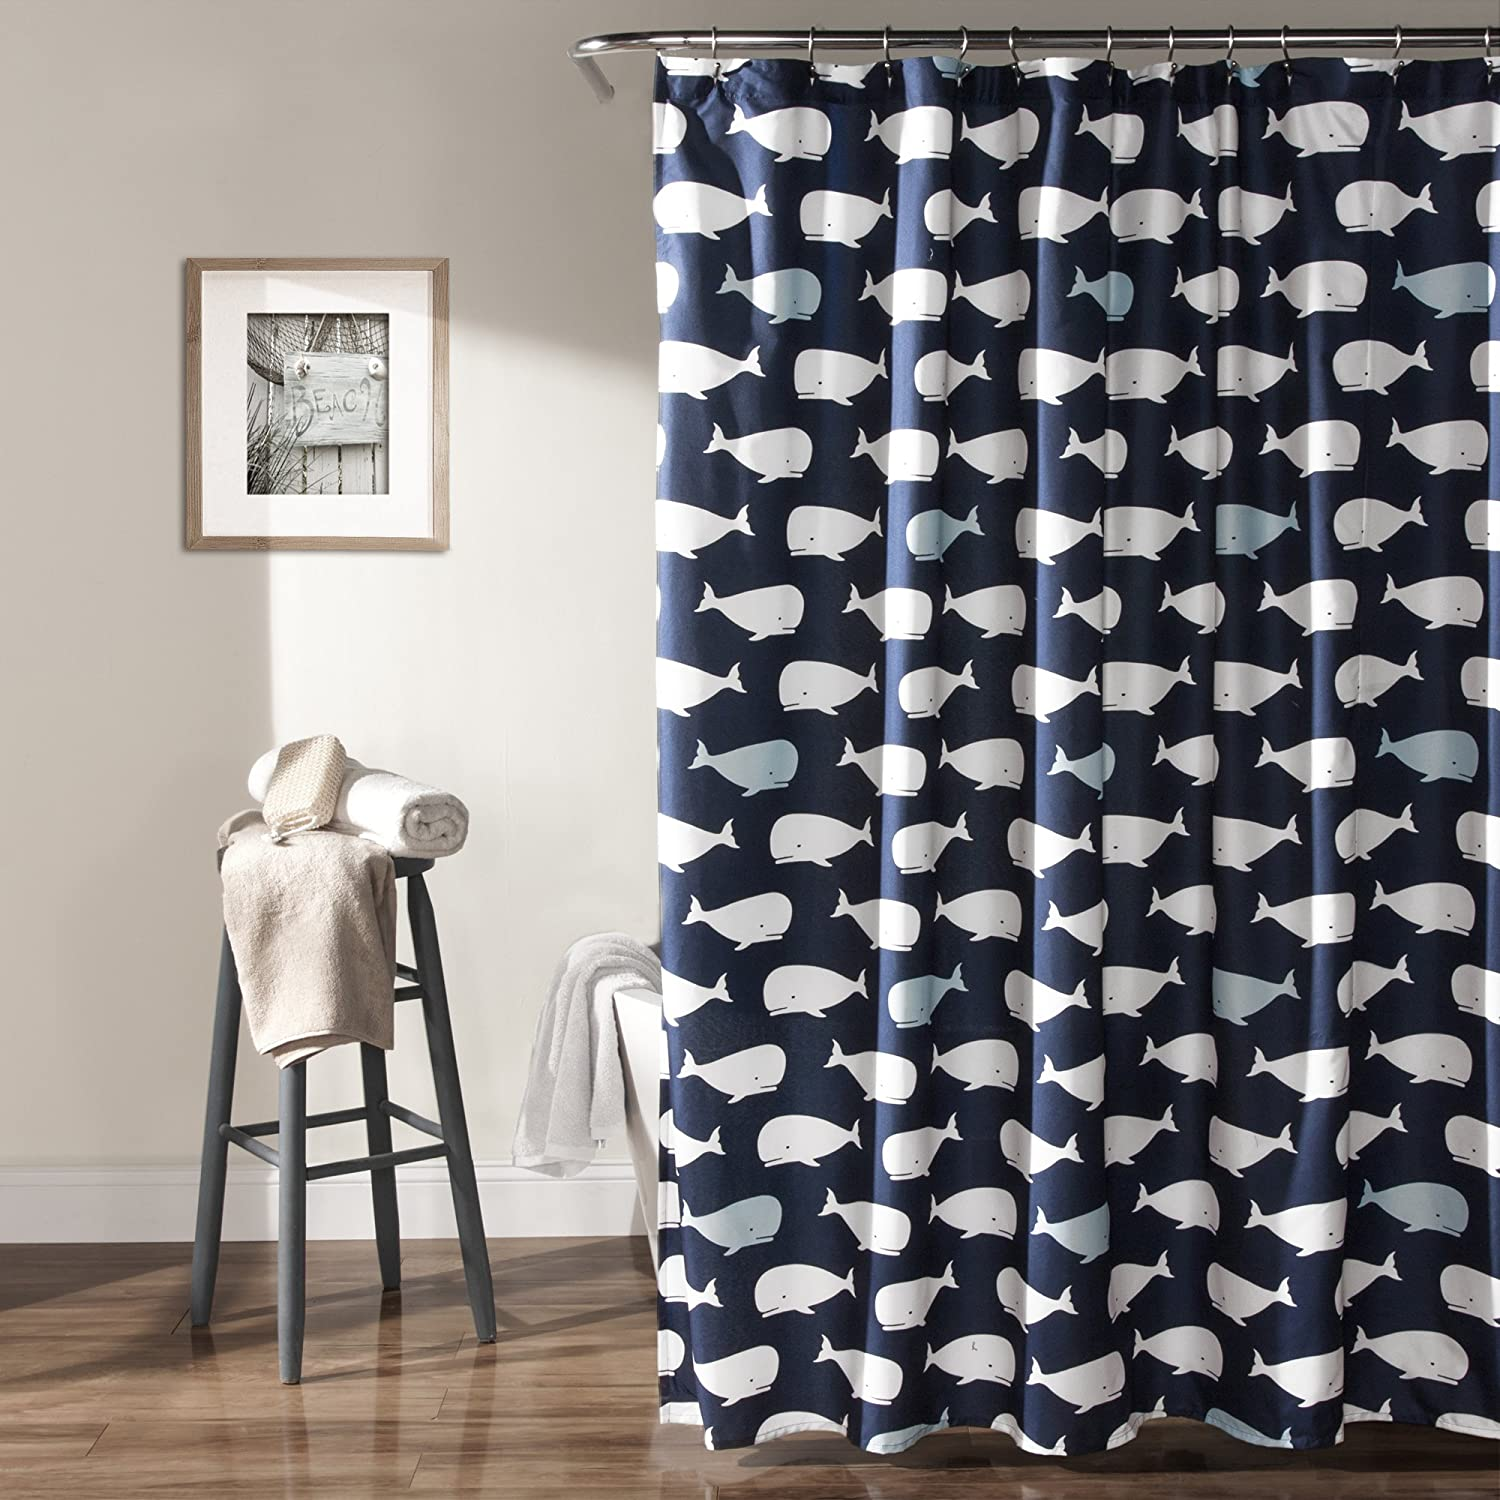 dark blue shower curtain. Amazon com  Lush Decor Whale Shower Curtain 72 x Navy Home Kitchen